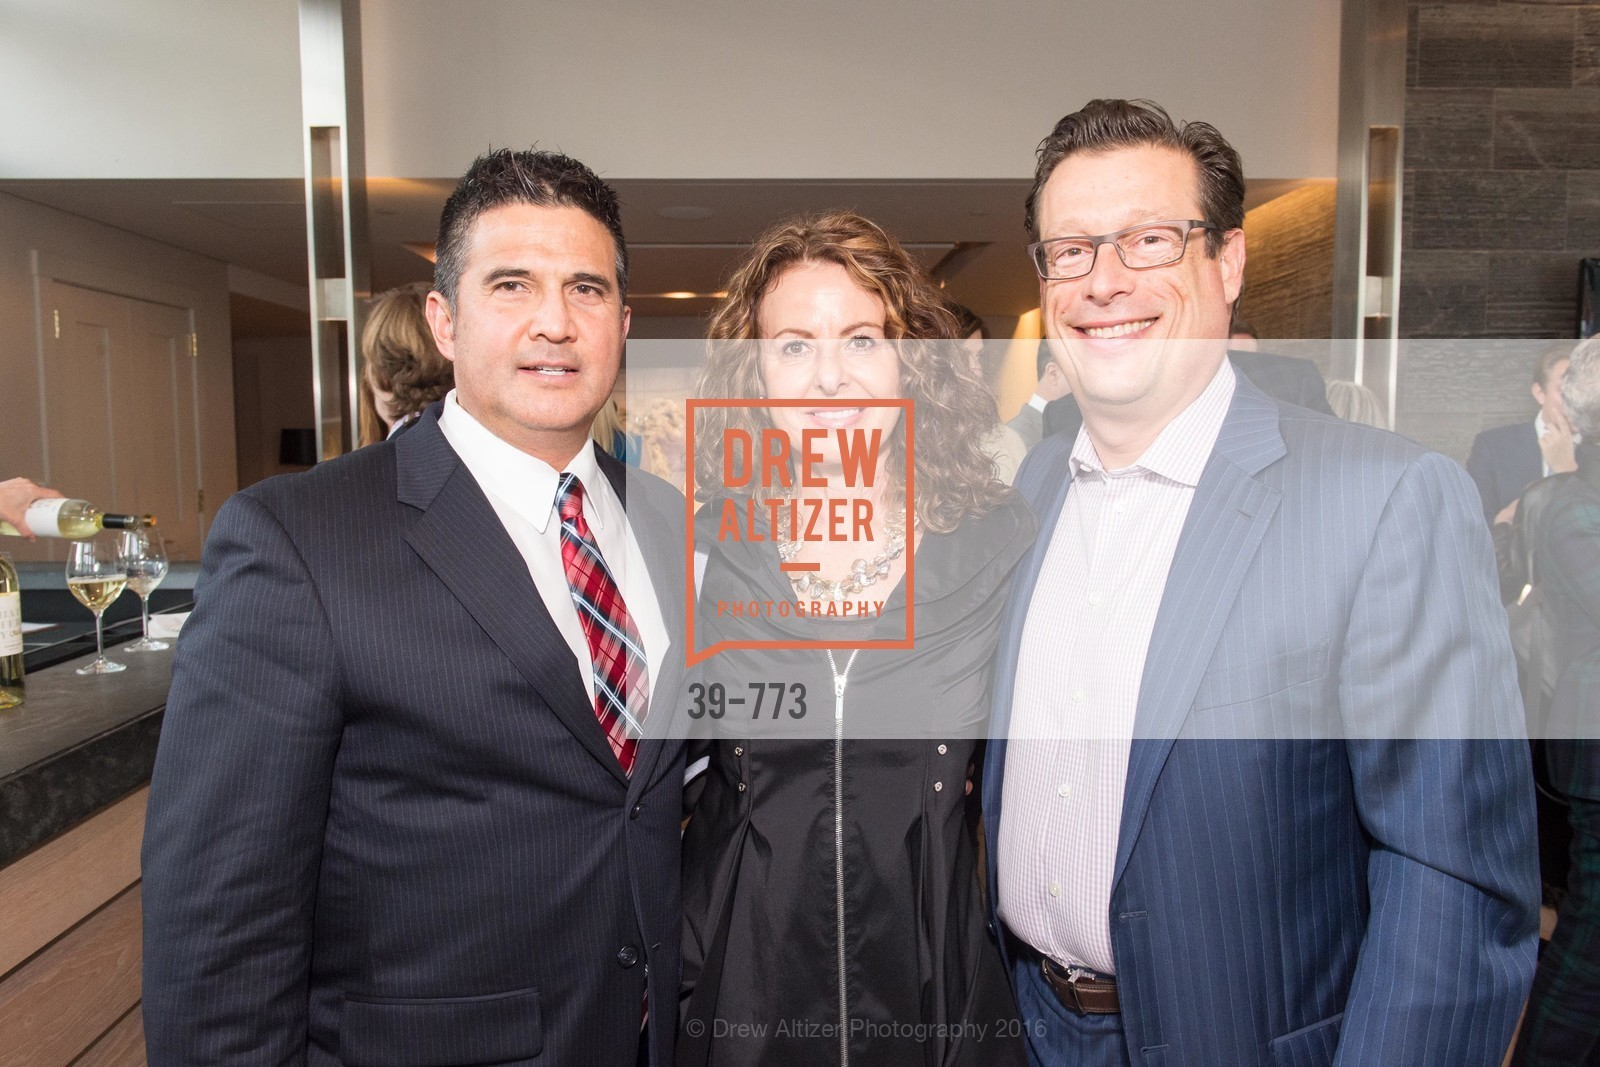 Jonathan Soh, Latife Hayson, Dean Badessa, Sotheby's International Realty's Celebrates the New Year, The Battery, Penthouse. 717 Battery St, January 27th, 2016,Drew Altizer, Drew Altizer Photography, full-service agency, private events, San Francisco photographer, photographer california